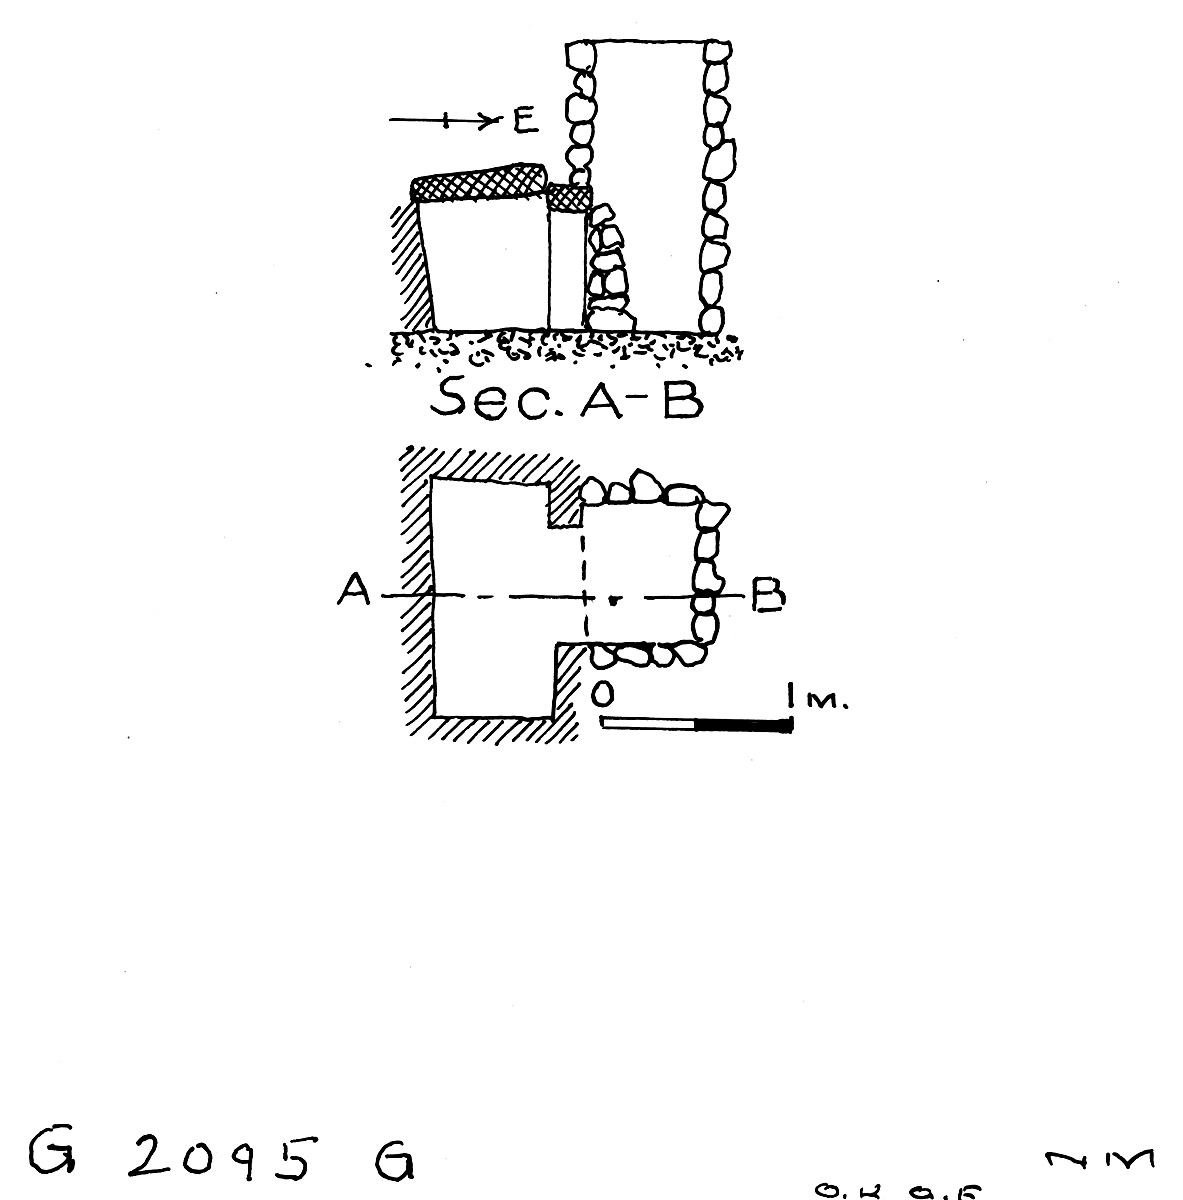 Maps and plans: G 2095, Shaft G